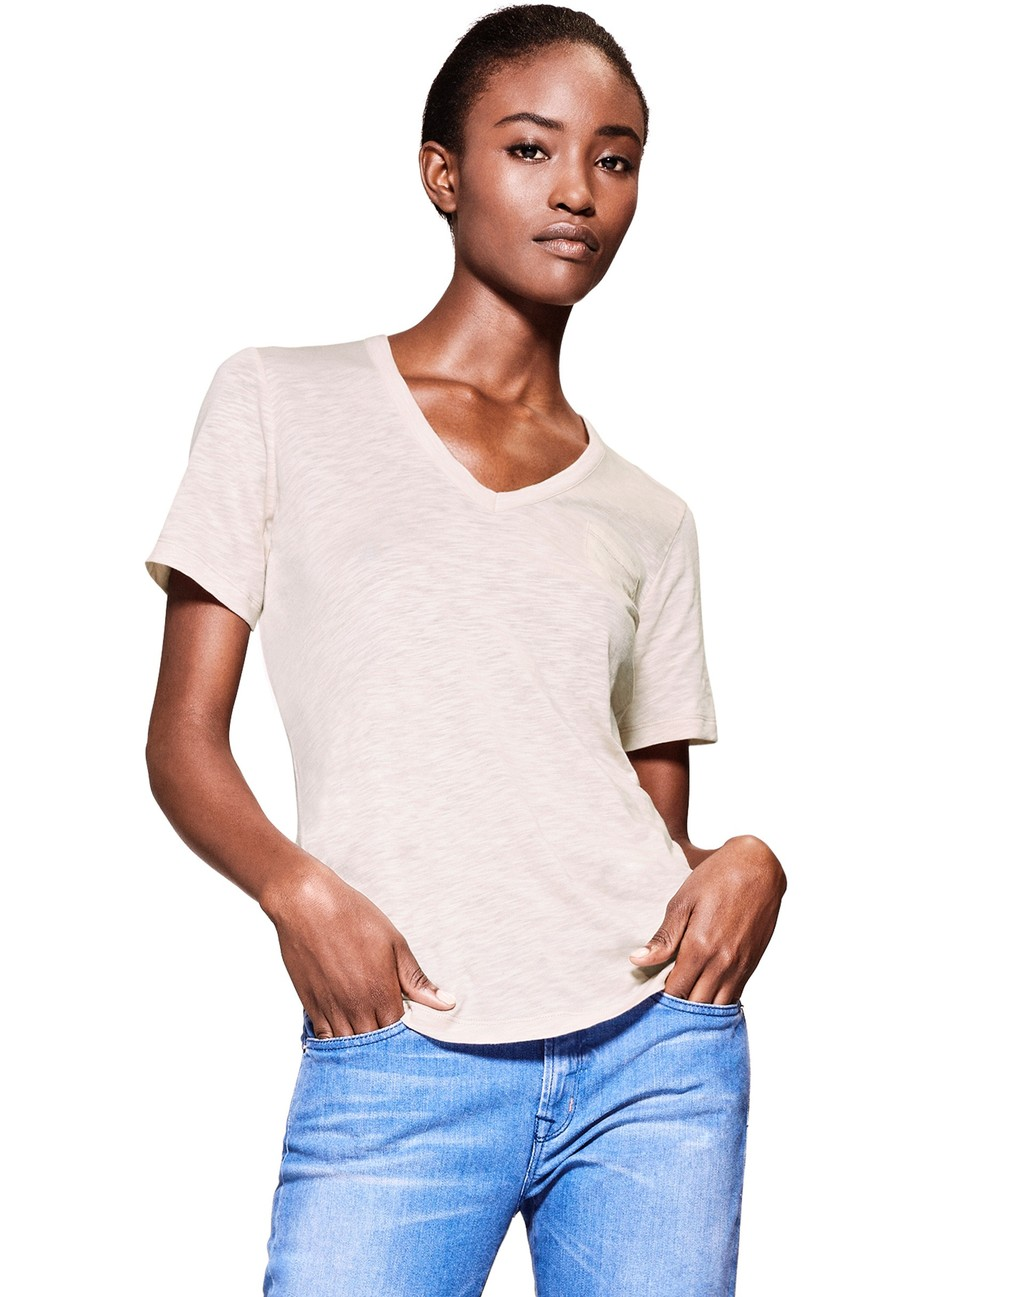 The Perfect V Neck Tee Blush - neckline: v-neck; pattern: plain; style: t-shirt; predominant colour: stone; occasions: casual; length: standard; fit: body skimming; sleeve length: short sleeve; sleeve style: standard; pattern type: fabric; texture group: jersey - stretchy/drapey; fibres: viscose/rayon - mix; season: s/s 2016